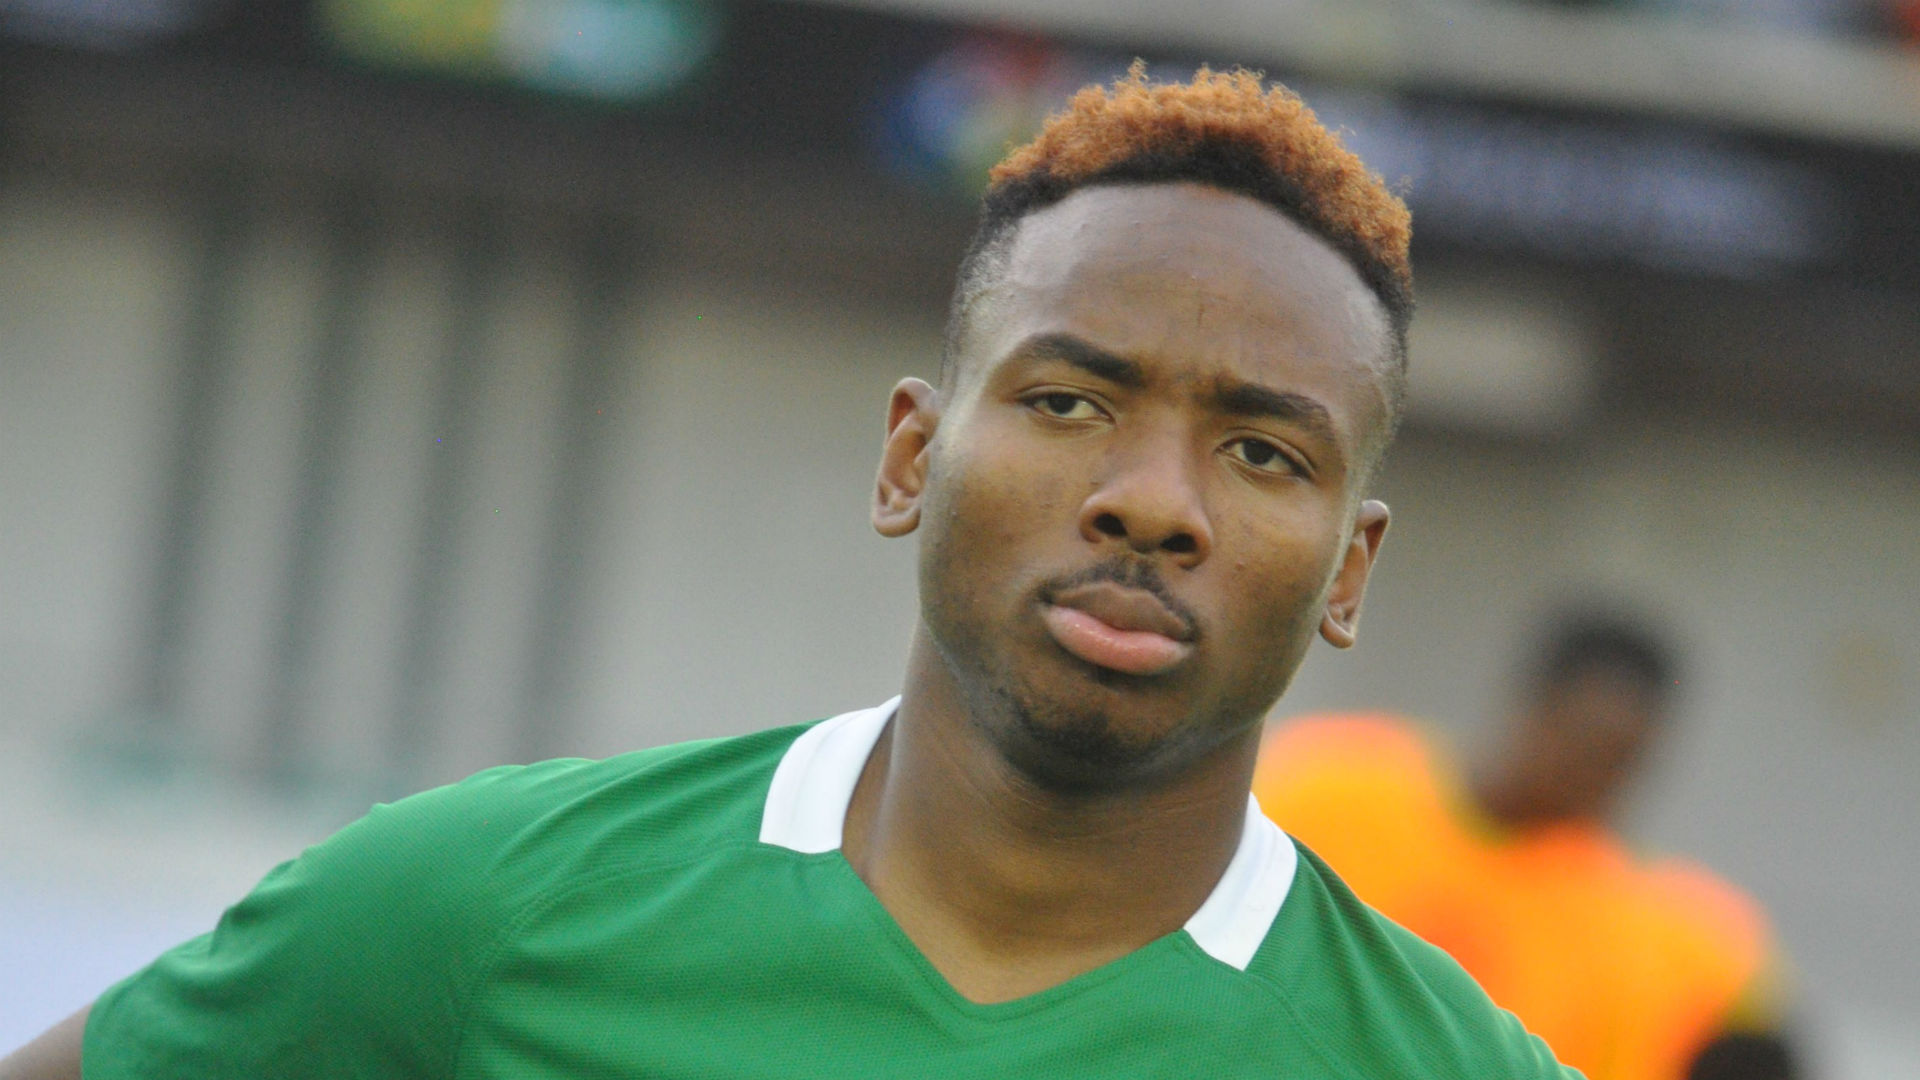 Afcon U23: Nwakali returns to Nigeria camp for Sudan clash